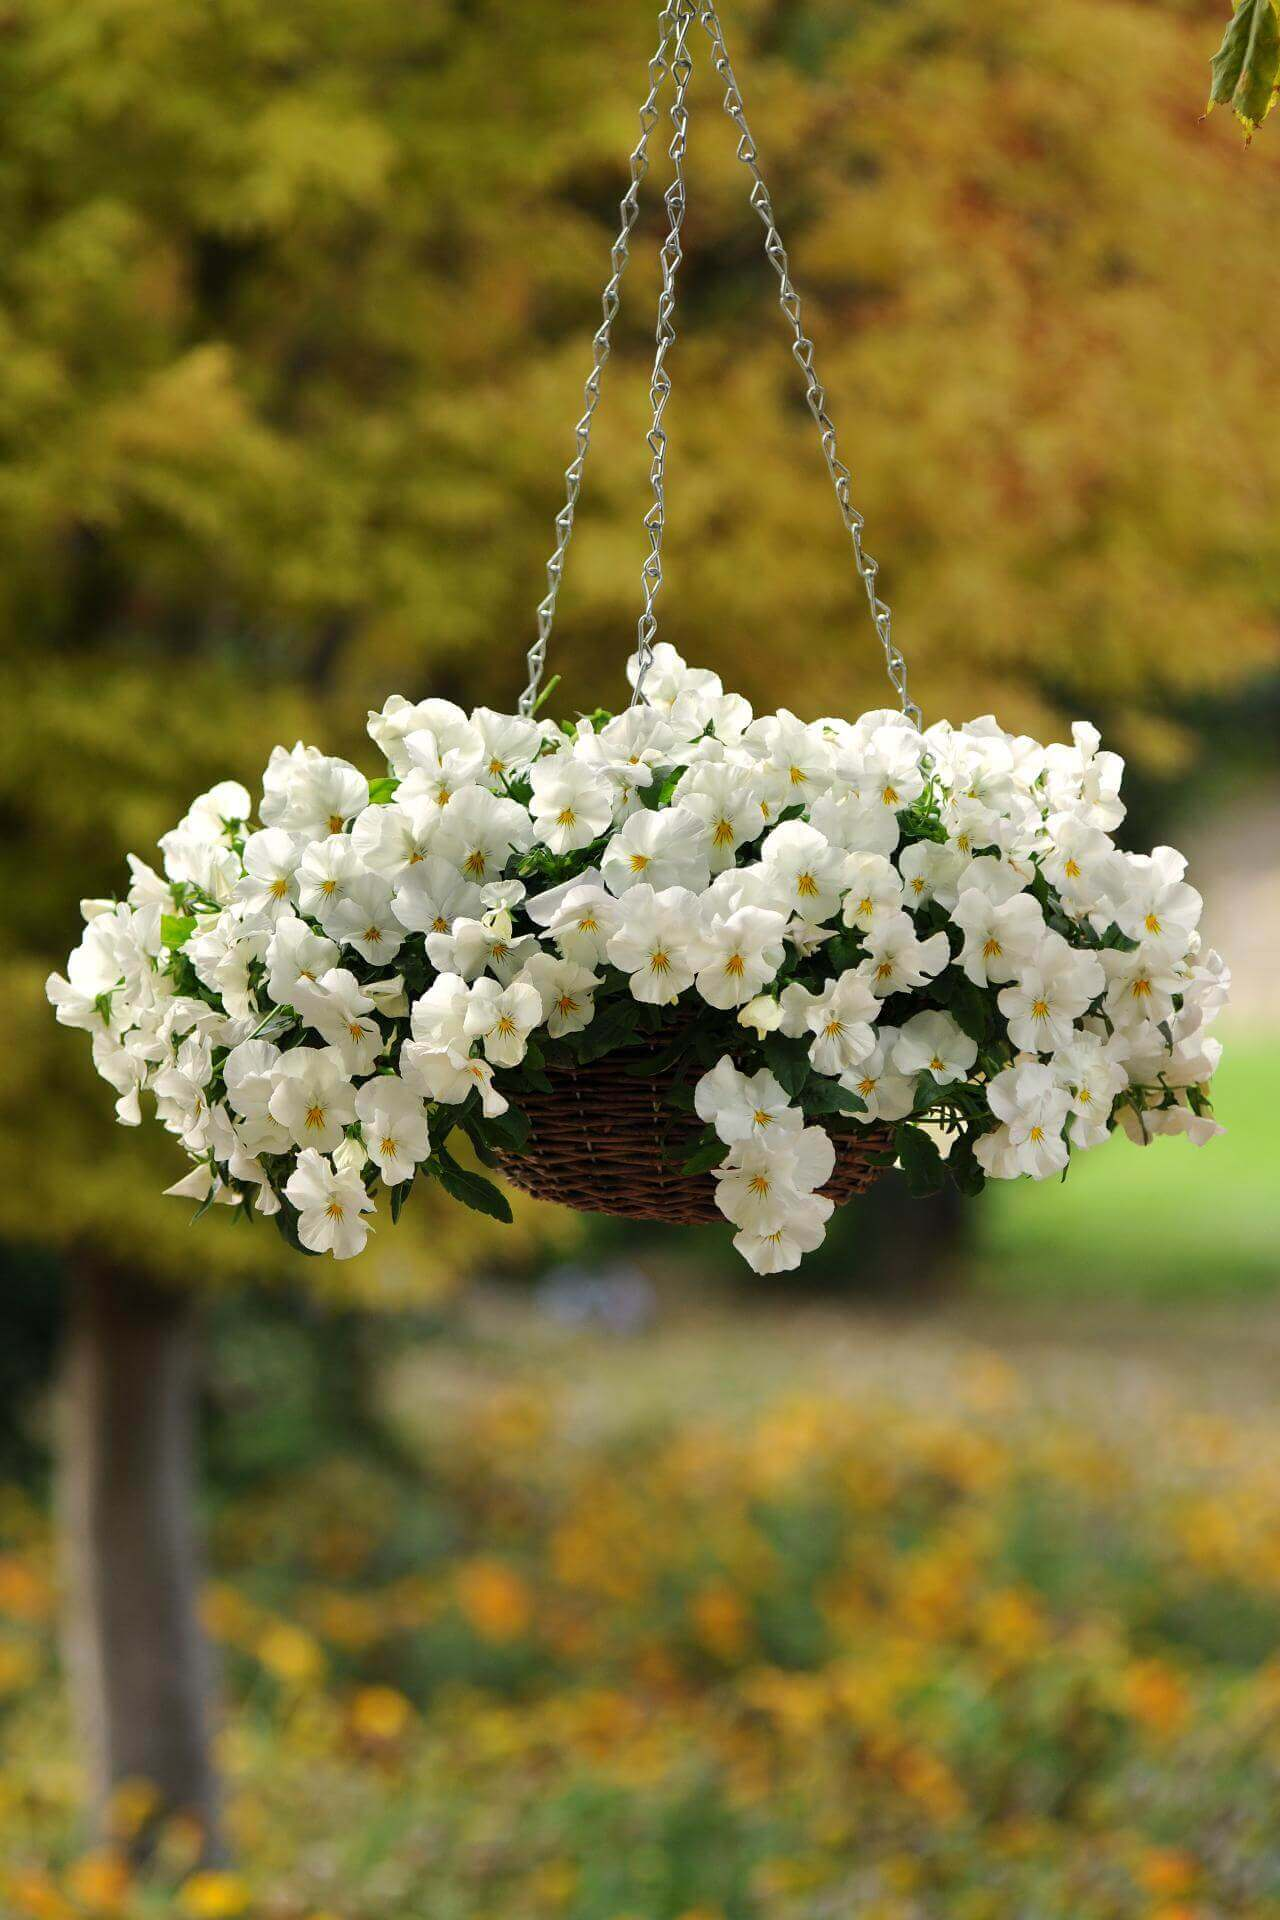 45 Best Outdoor Hanging Planter Ideas and Designs for 2017 on Hanging Plants Ideas  id=20994